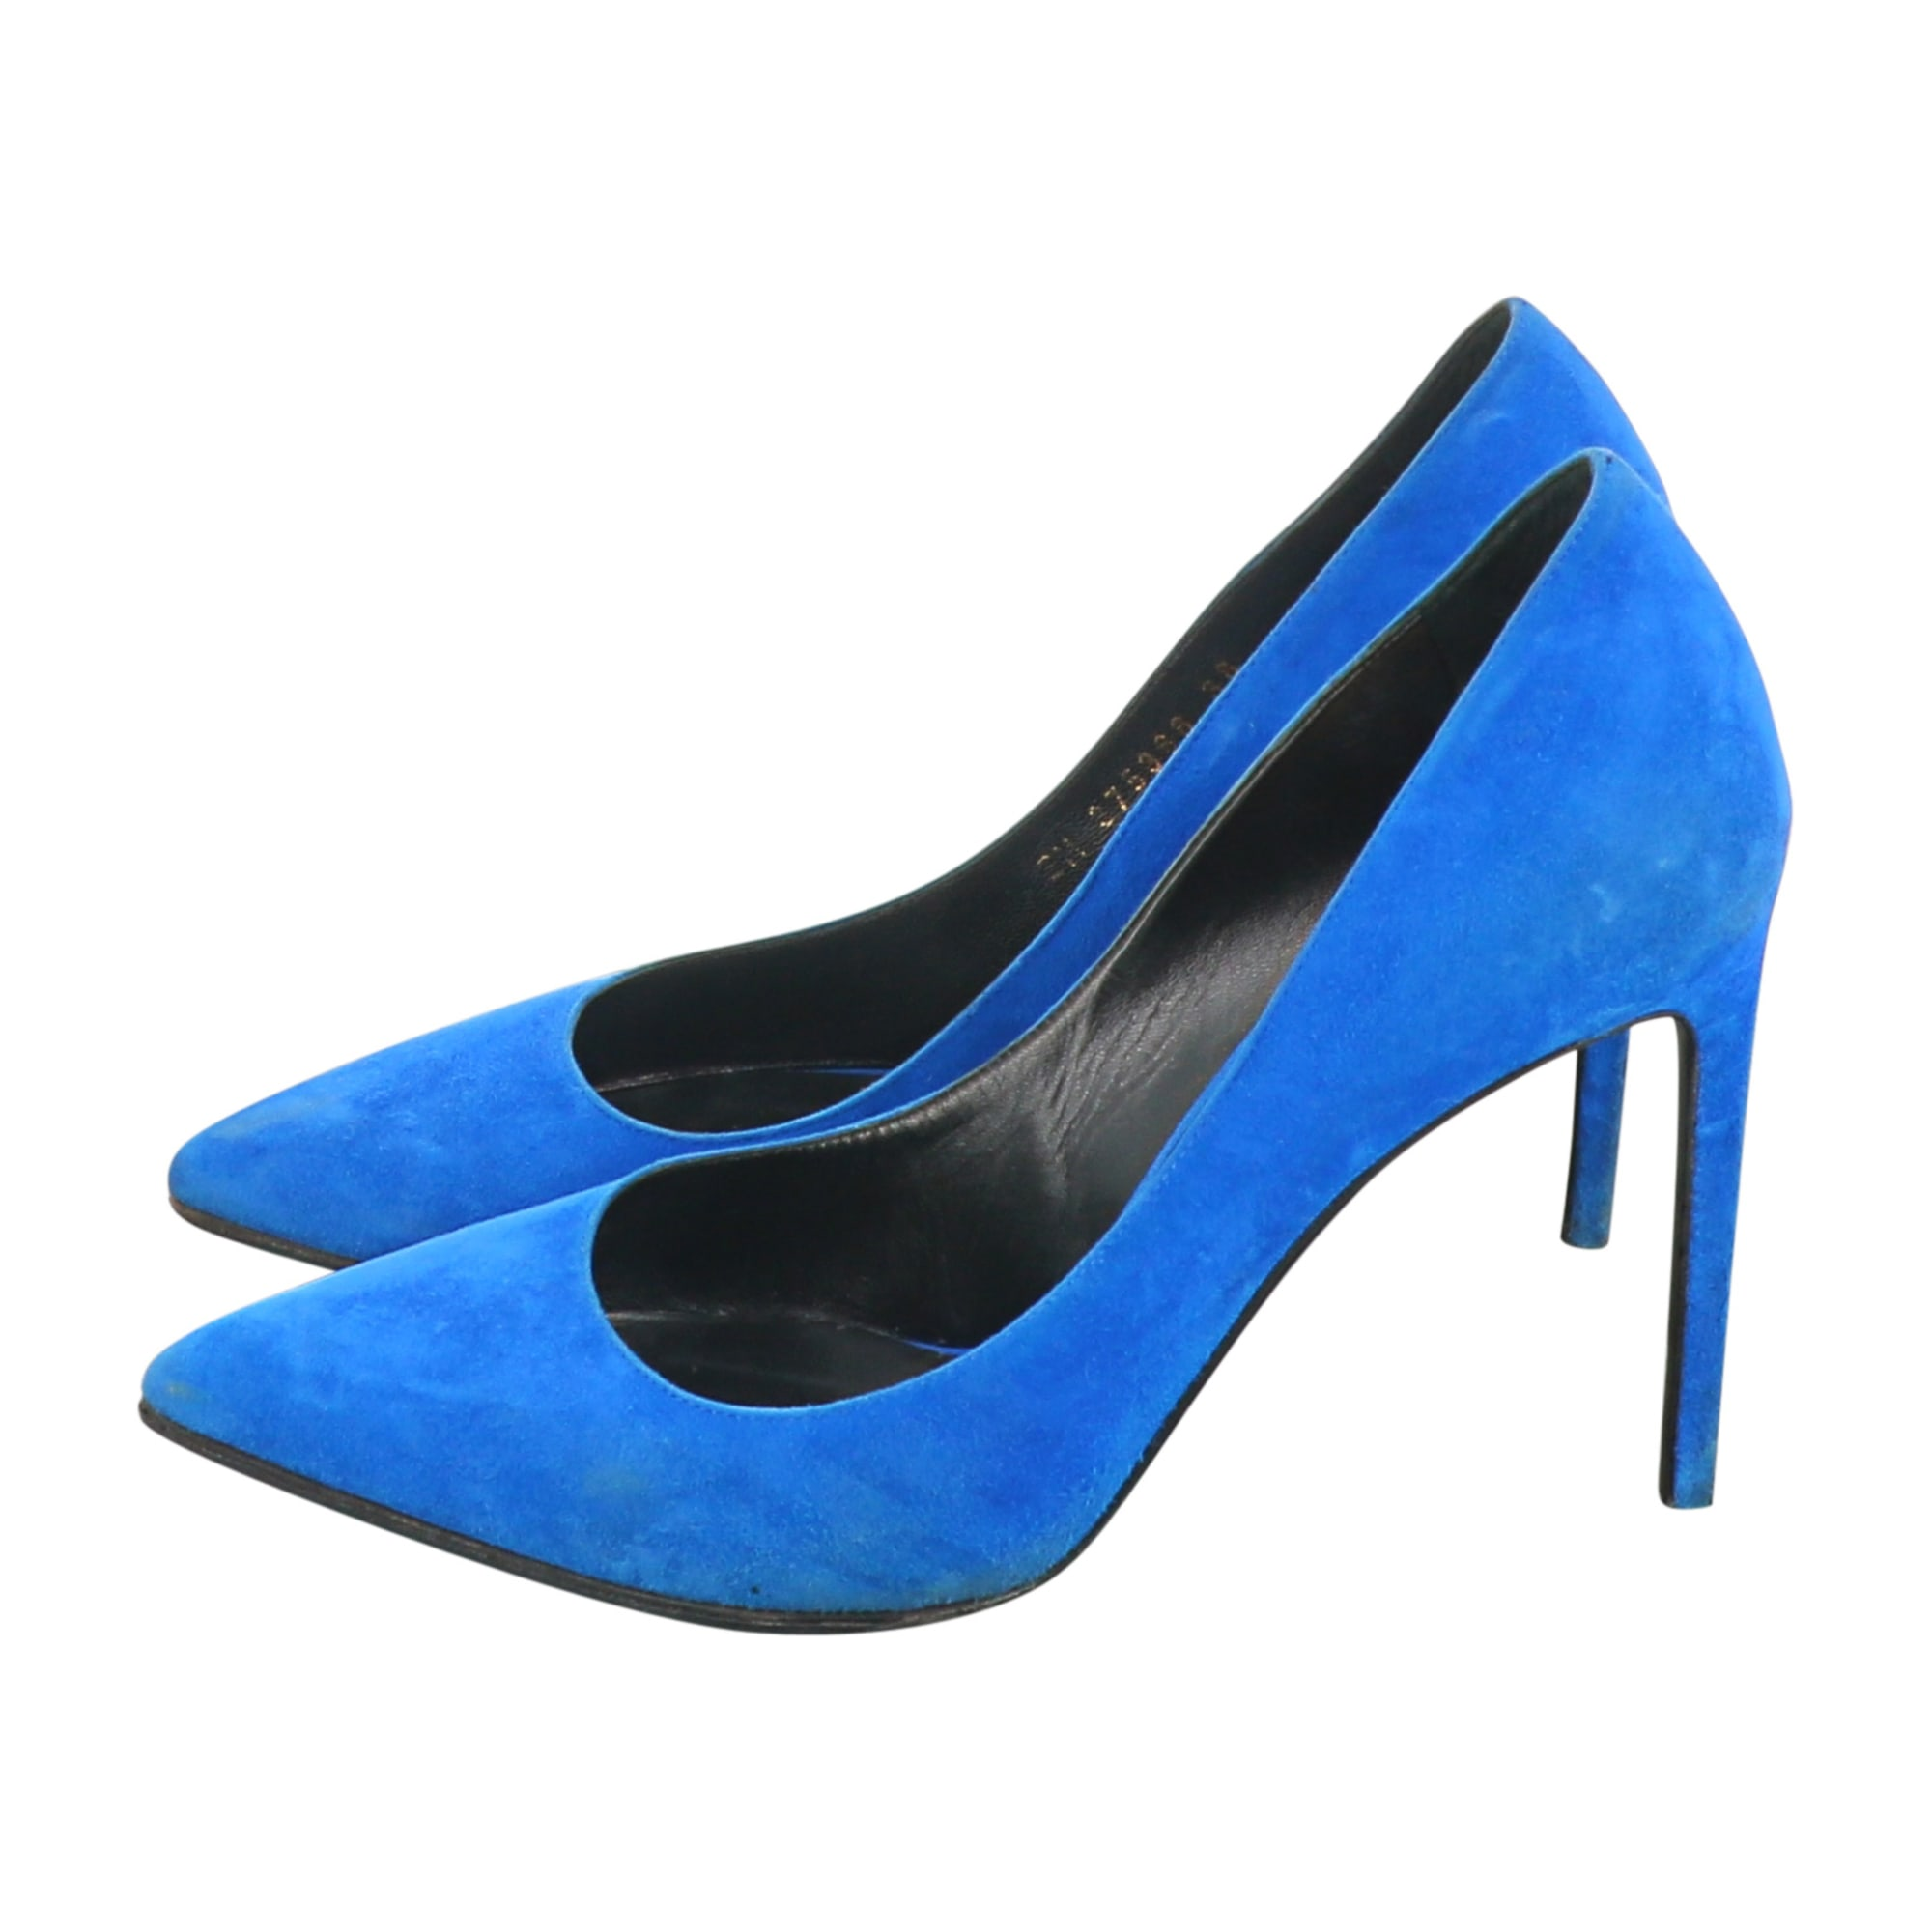 Pumps, Heels SAINT LAURENT Blue, navy, turquoise